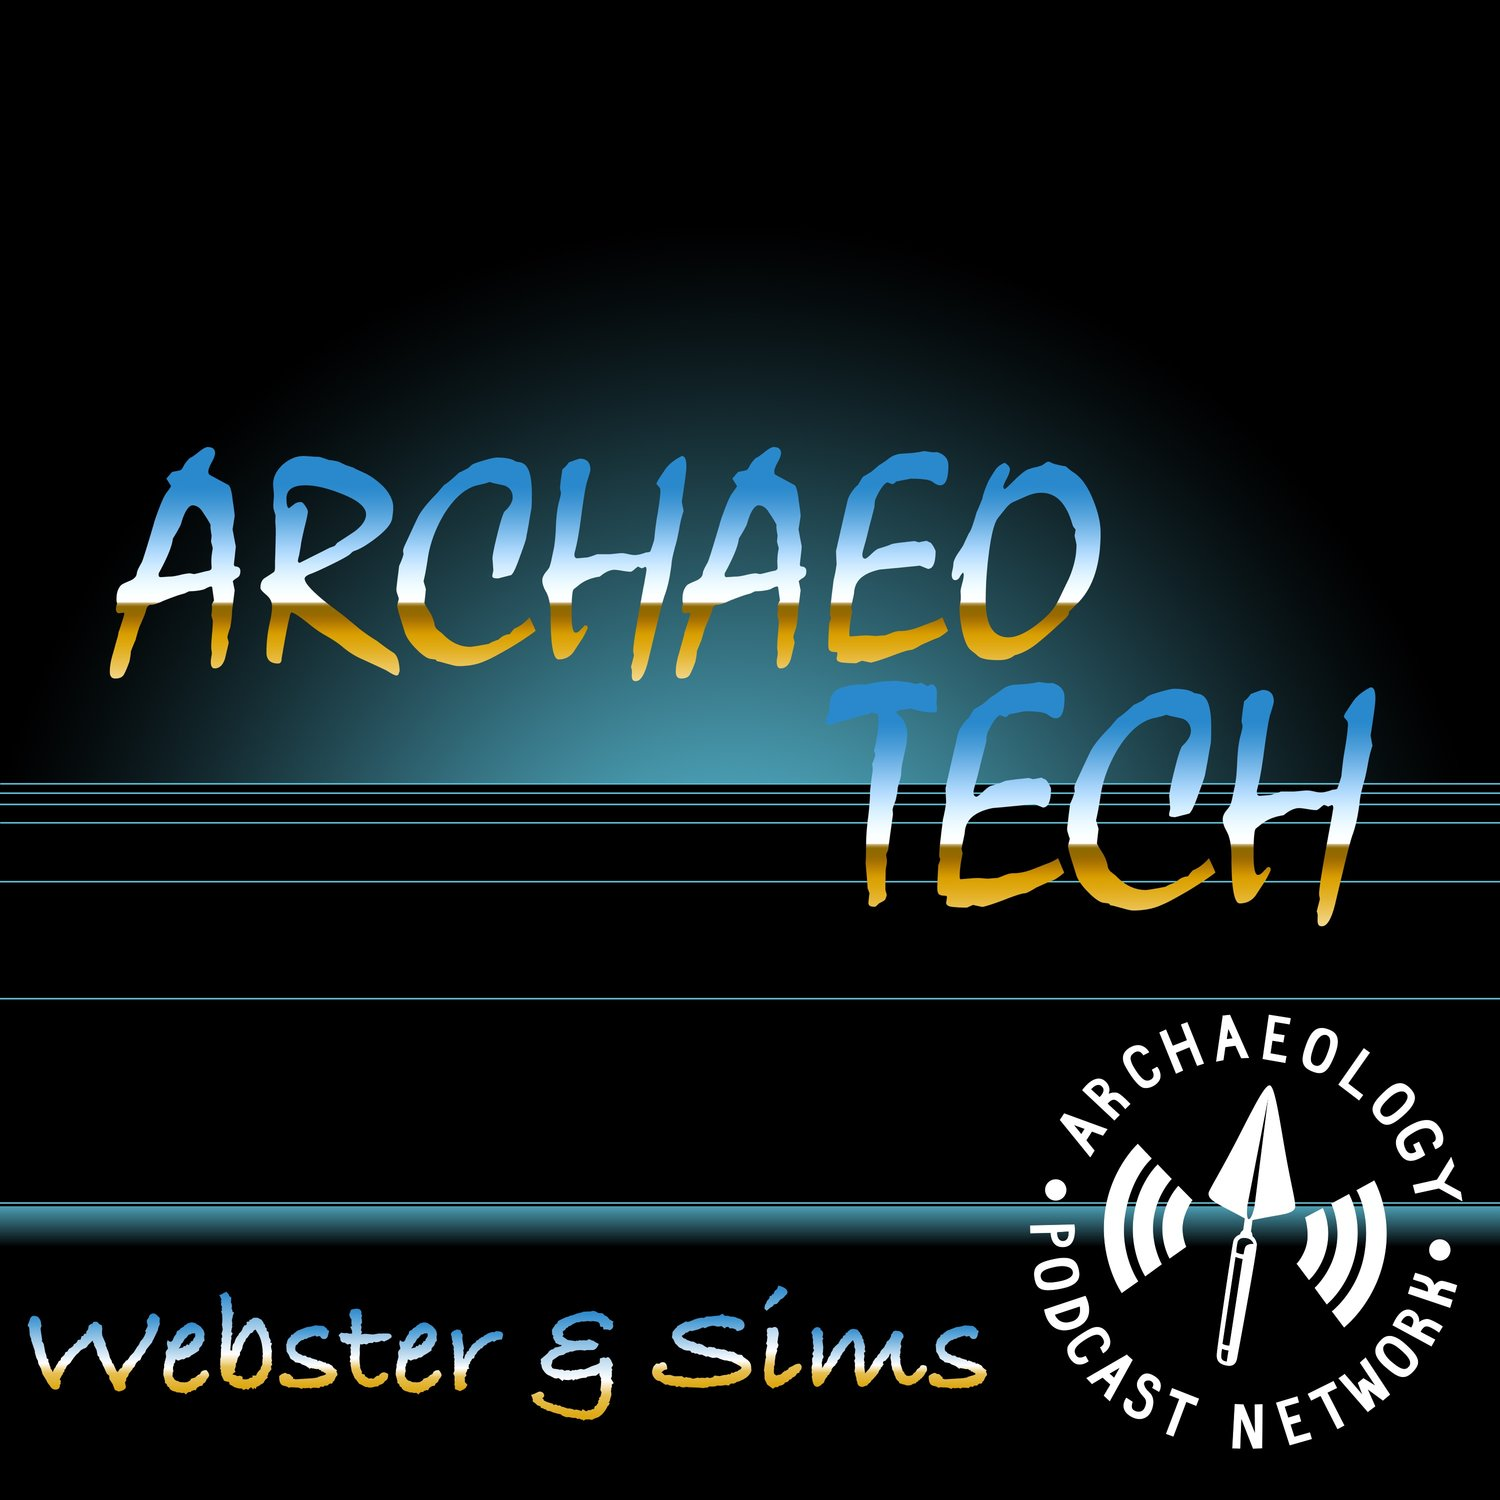 ArchaeoTech Podcast